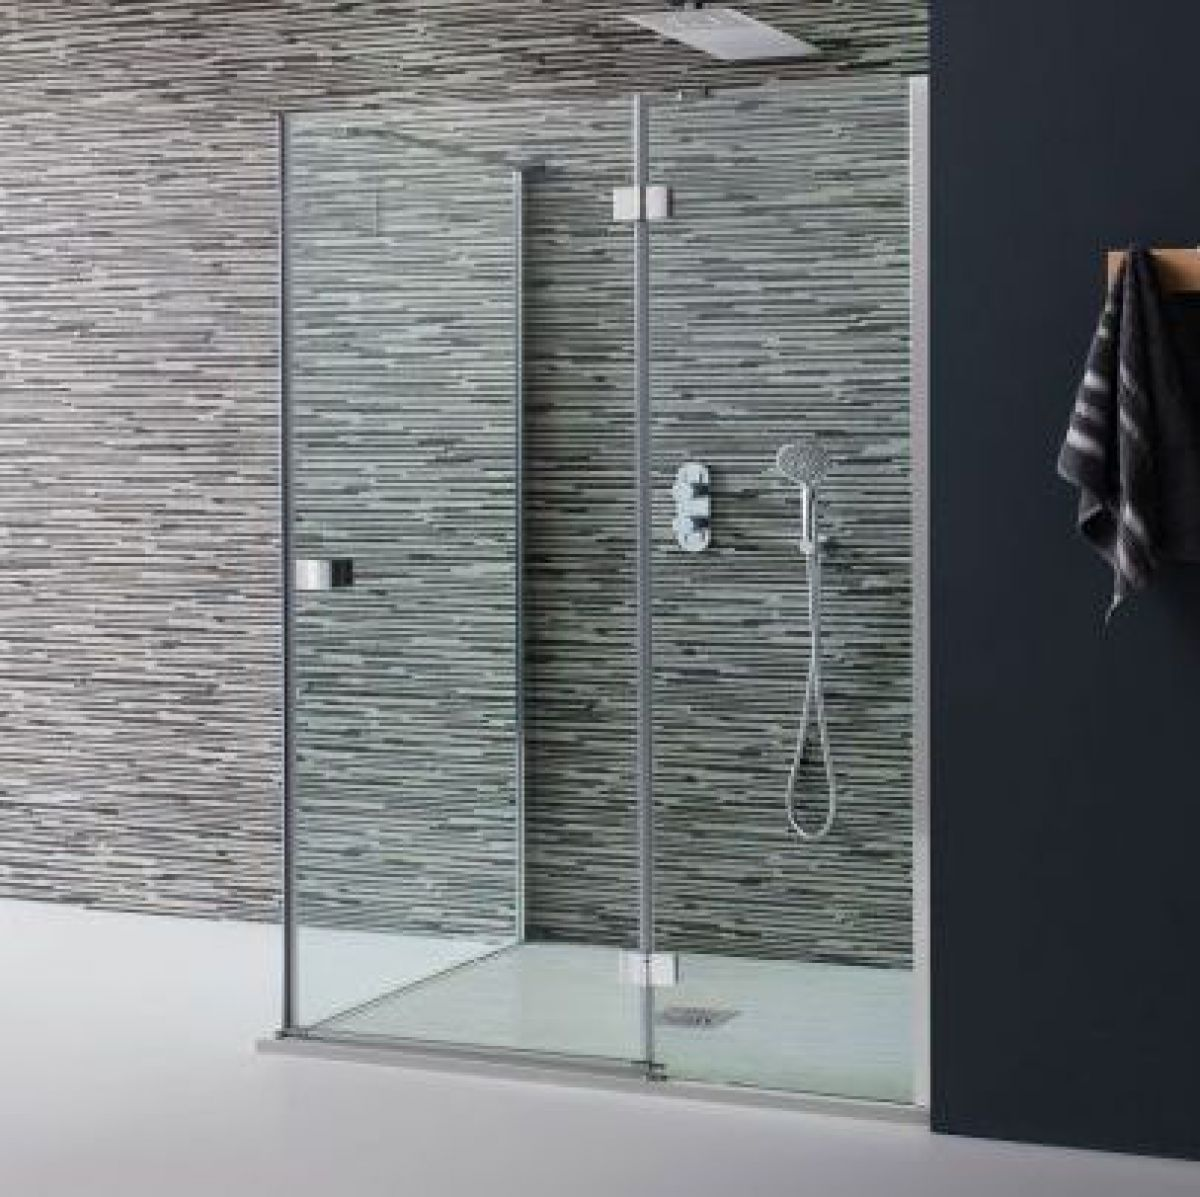 Simpsons design hinged shower door with inline panel uk for 1200 hinged shower door